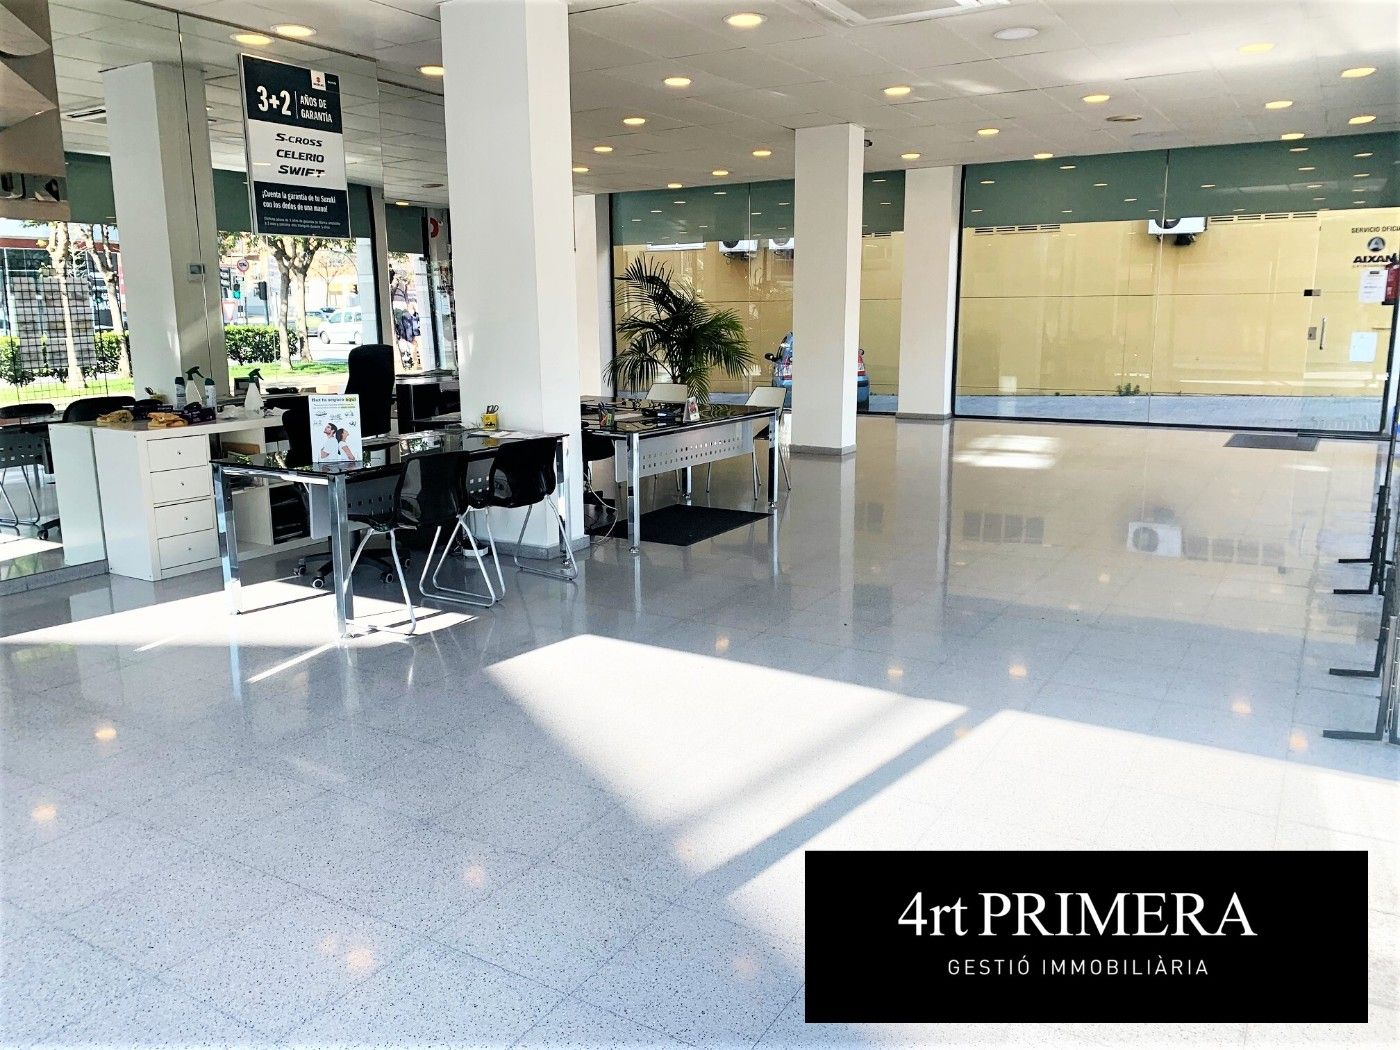 Rent Business premise  Carrer salvador casanova. , a 3 vents,